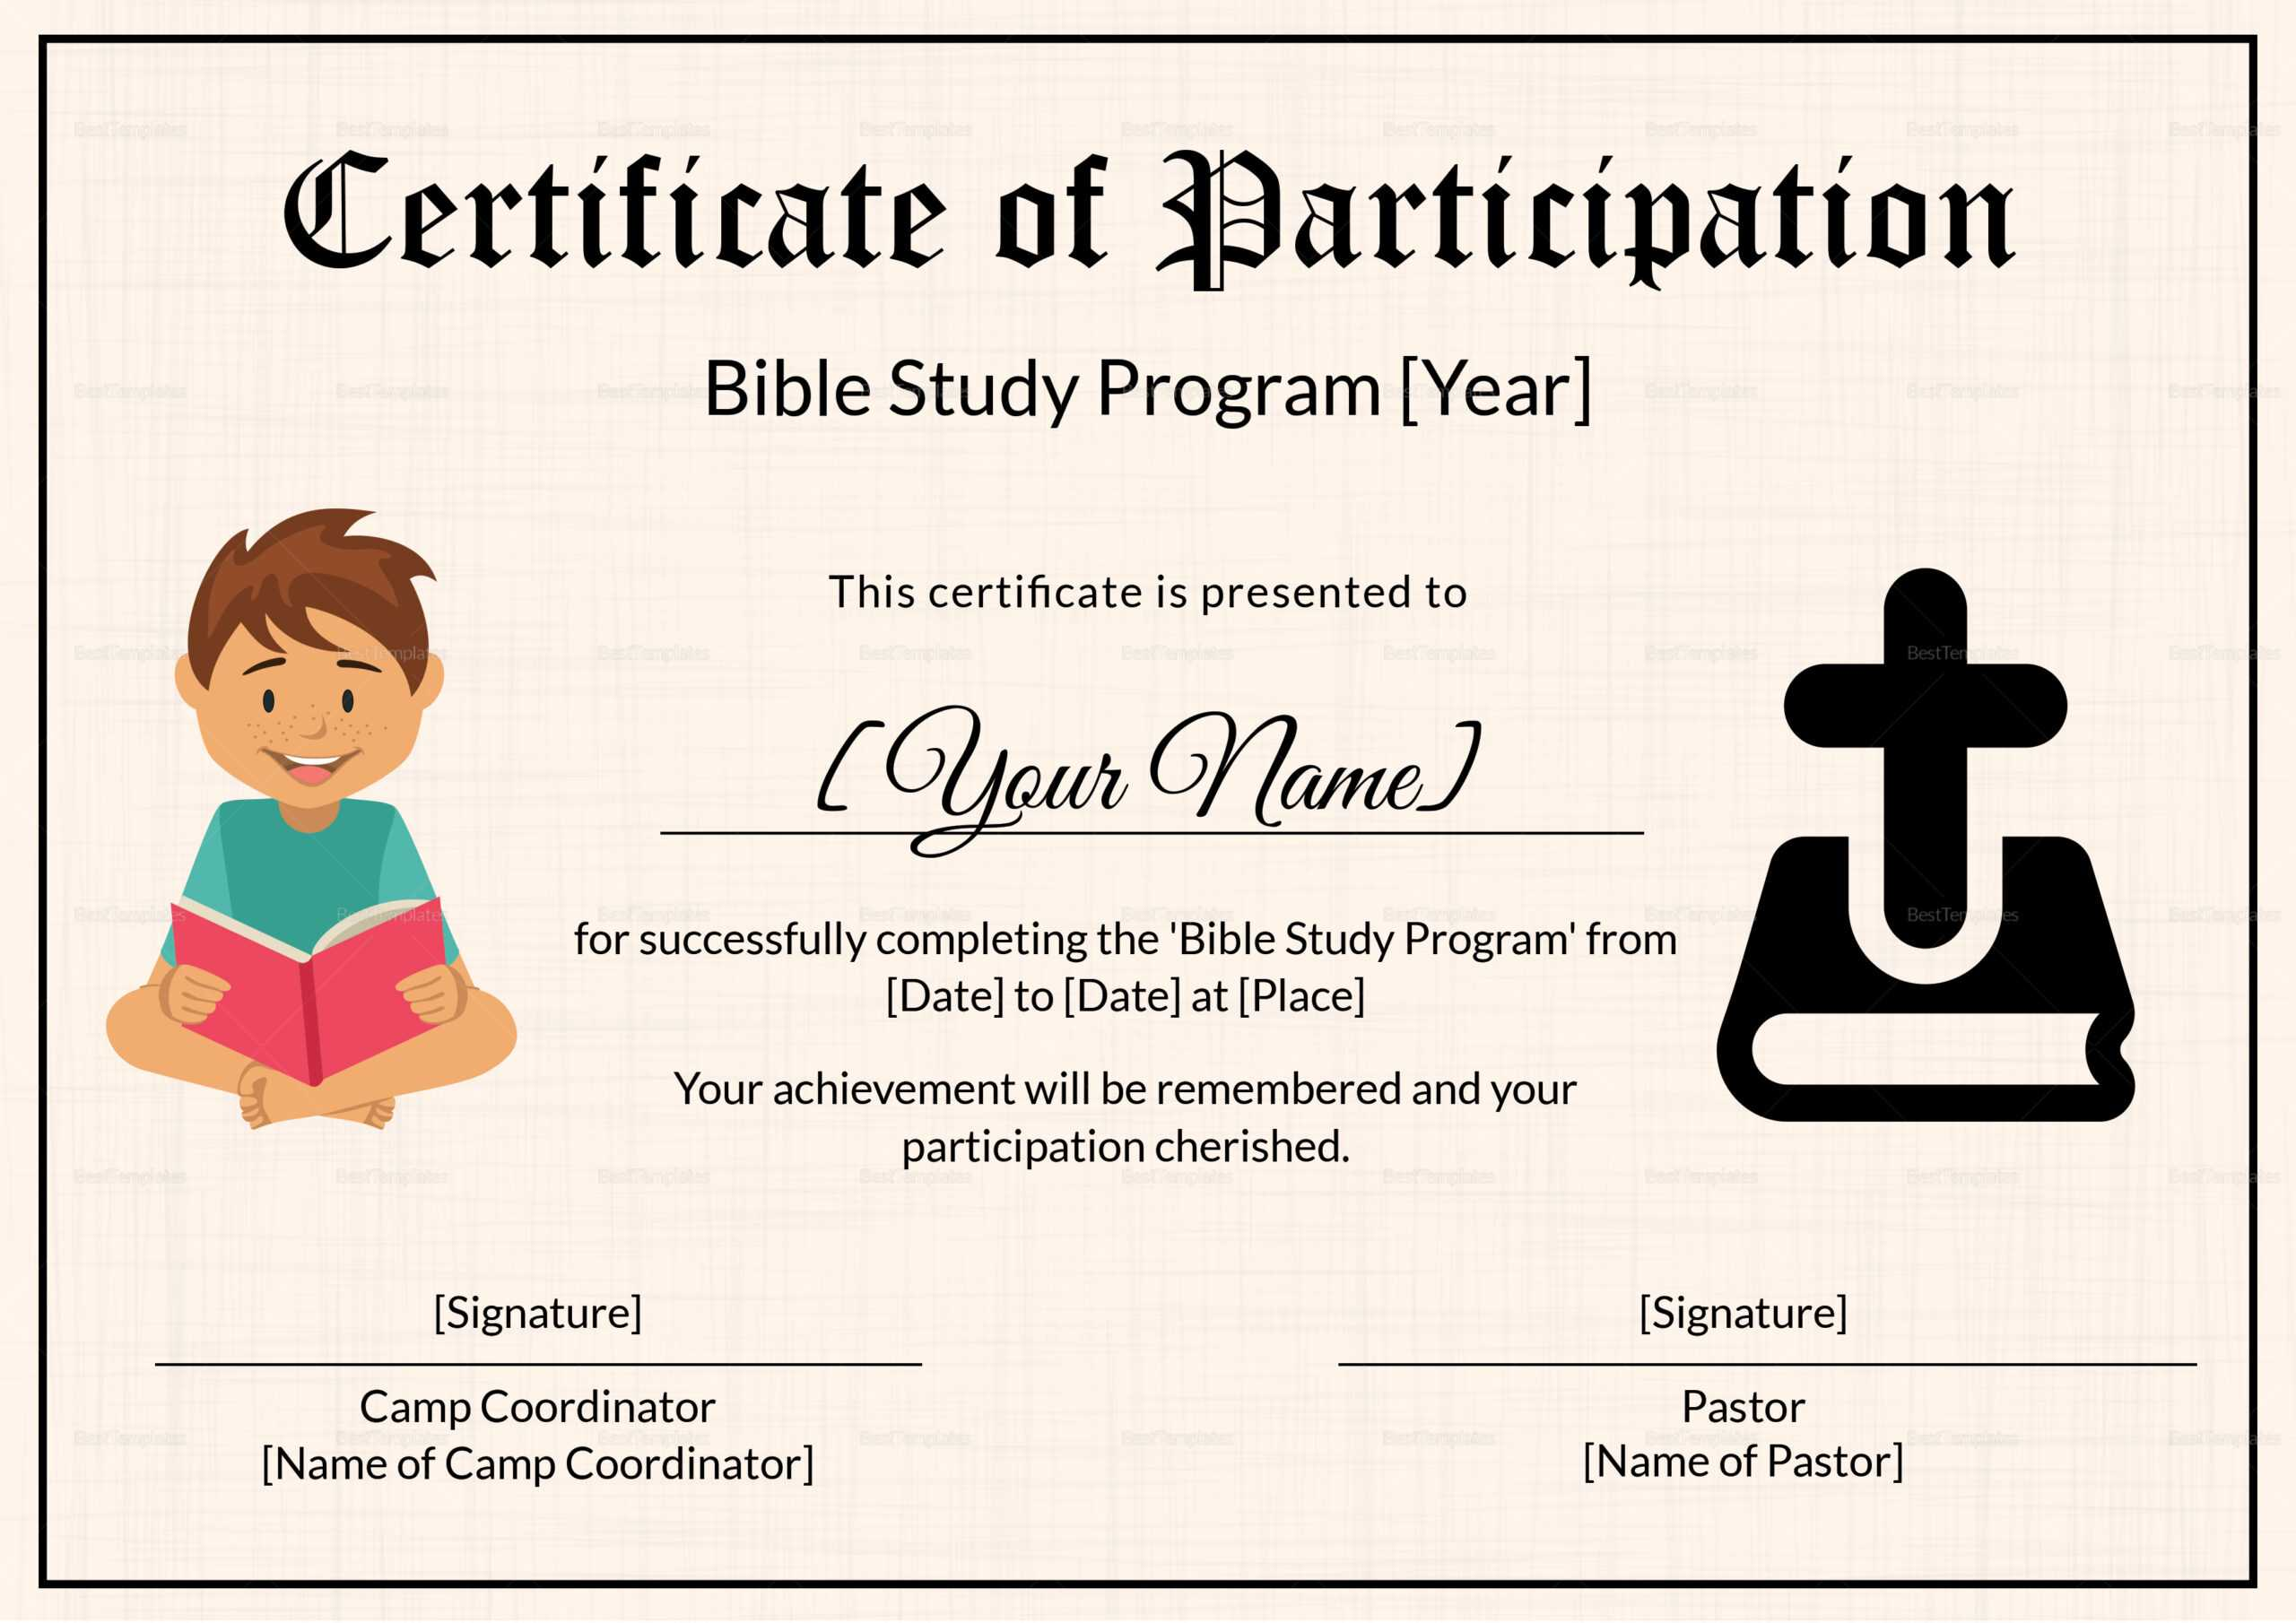 Bible Prophecy Program Certificate For Kids Template In Christian Certificate Template